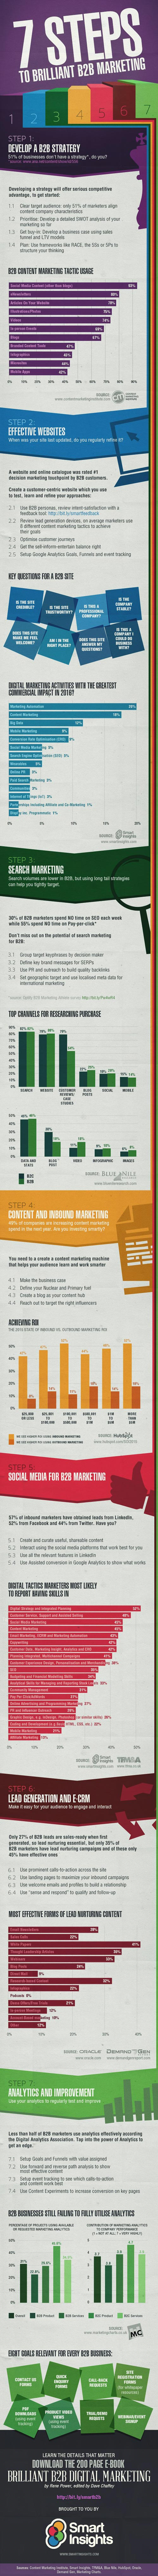 B2B Infographic of the week: 7 steps to brilliant B2B marketing